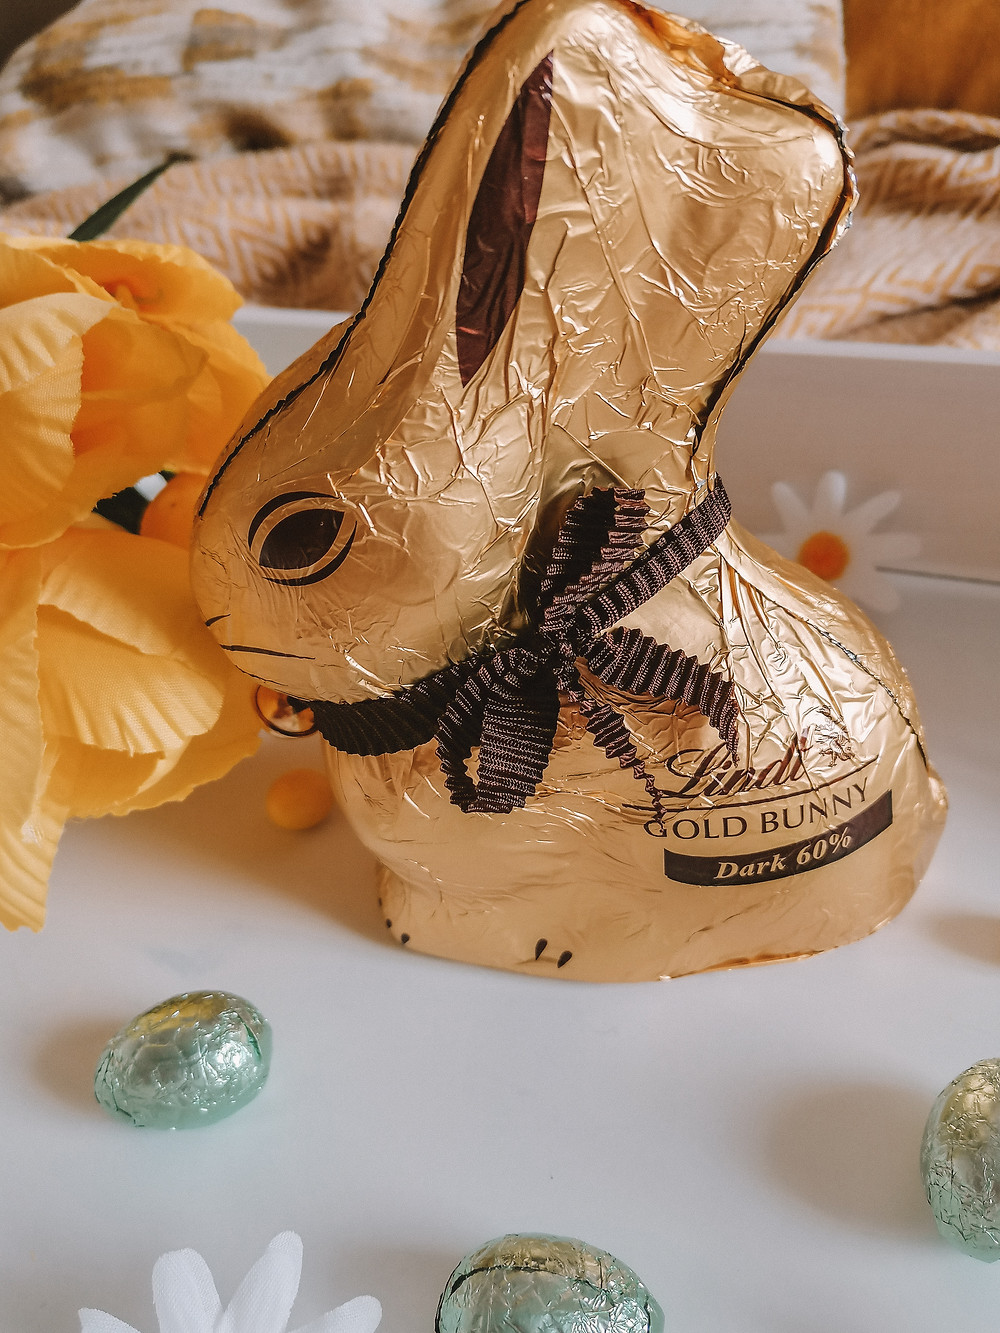 Lindt Gold Bunny with a brown ribbon and a bell